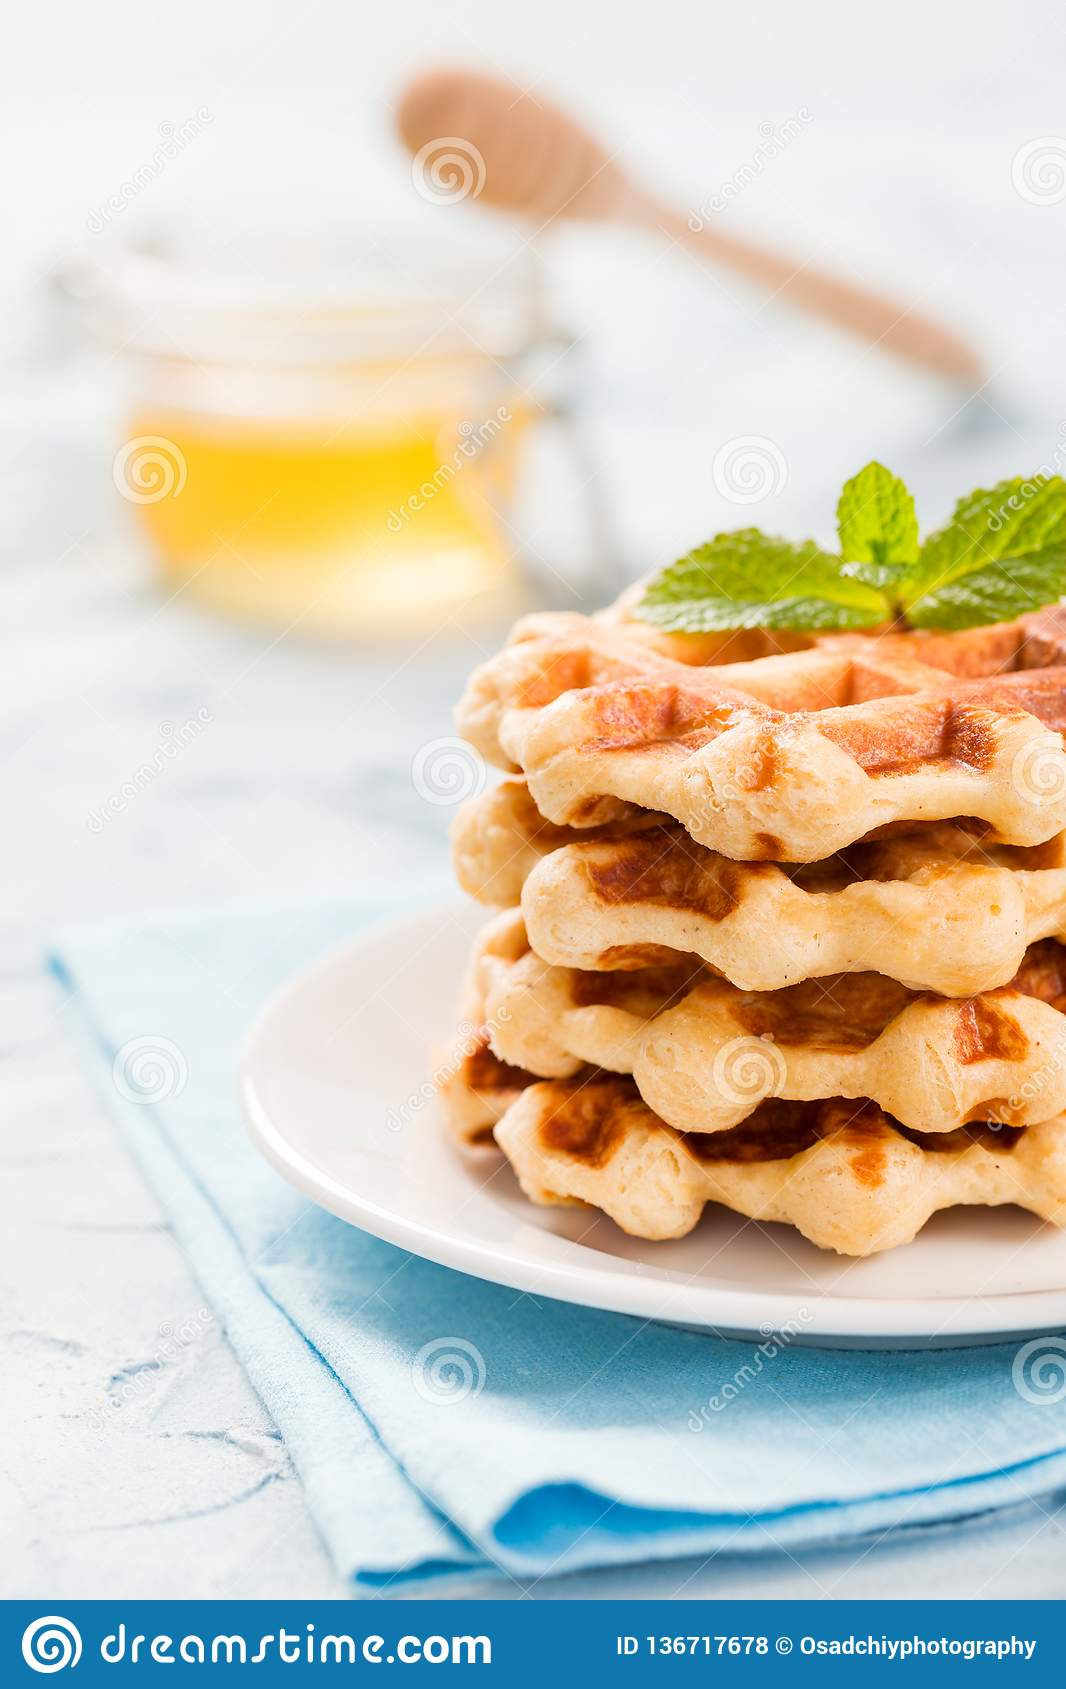 Belgian waffles with mint leaves and honey in glass jar with wooden honey dipper on pastel blue background.